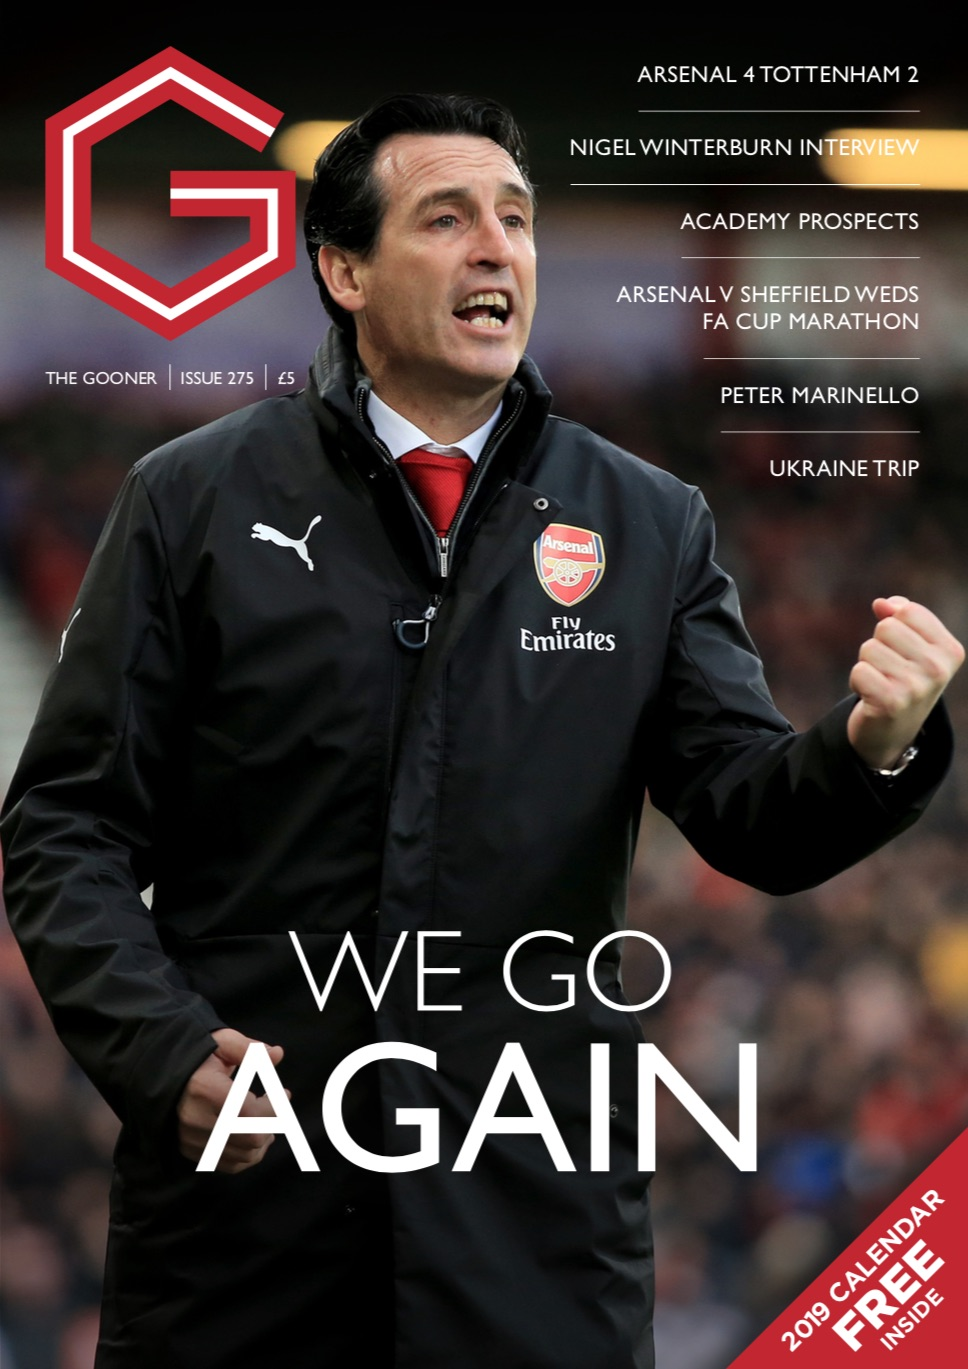 The Gooner Issue 275 (overseas)